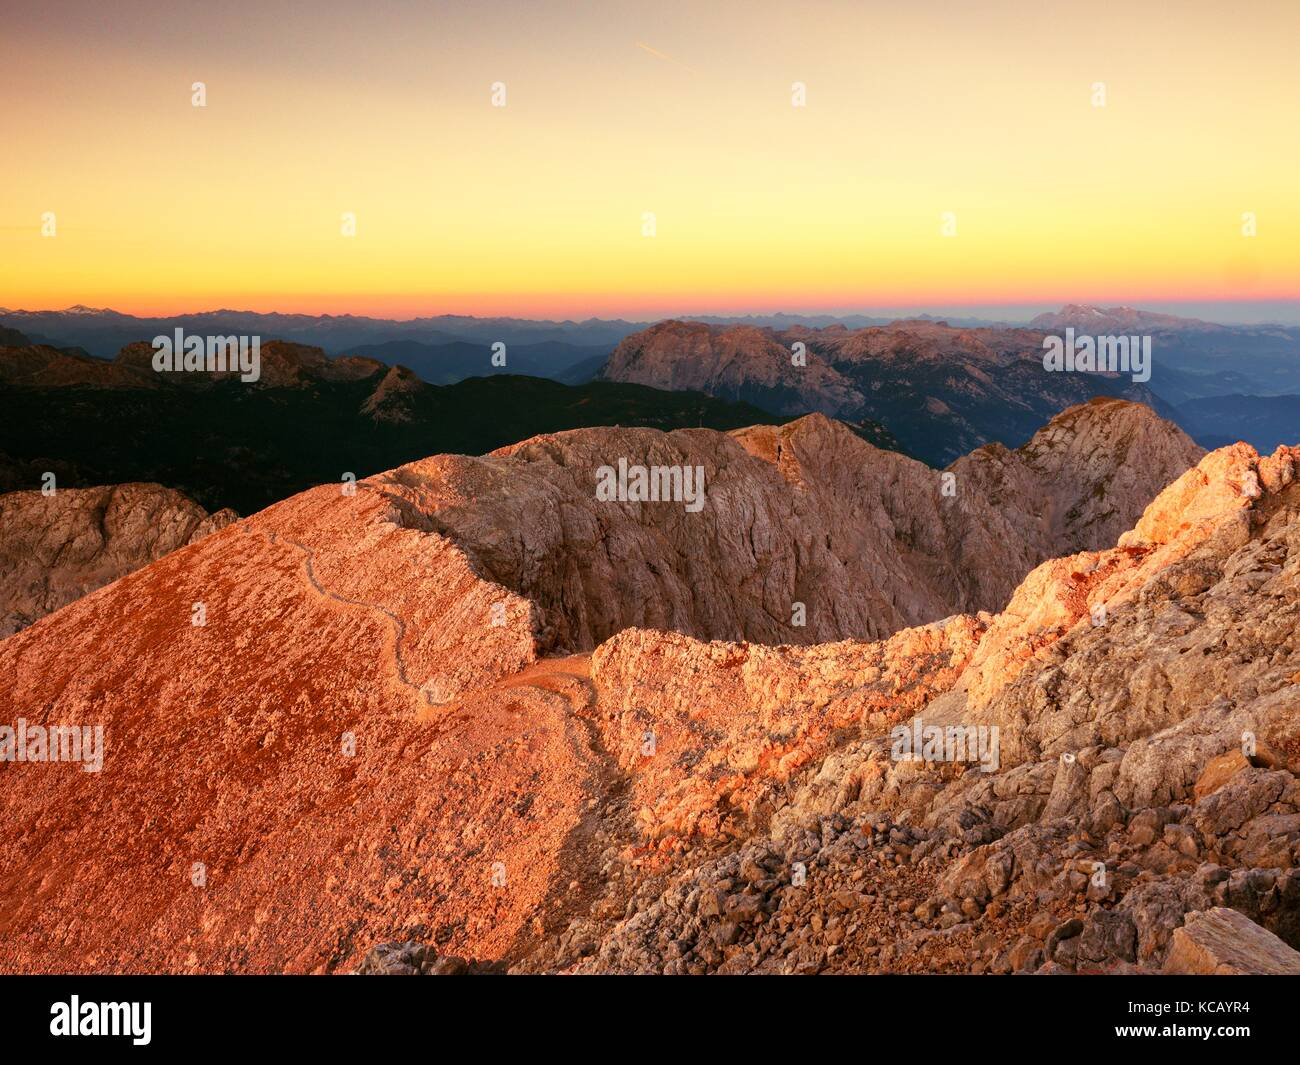 Morning view over Apine  cliff and valley.Daybreak Sun at horizon. Mountains increased from foggy background - Stock Image